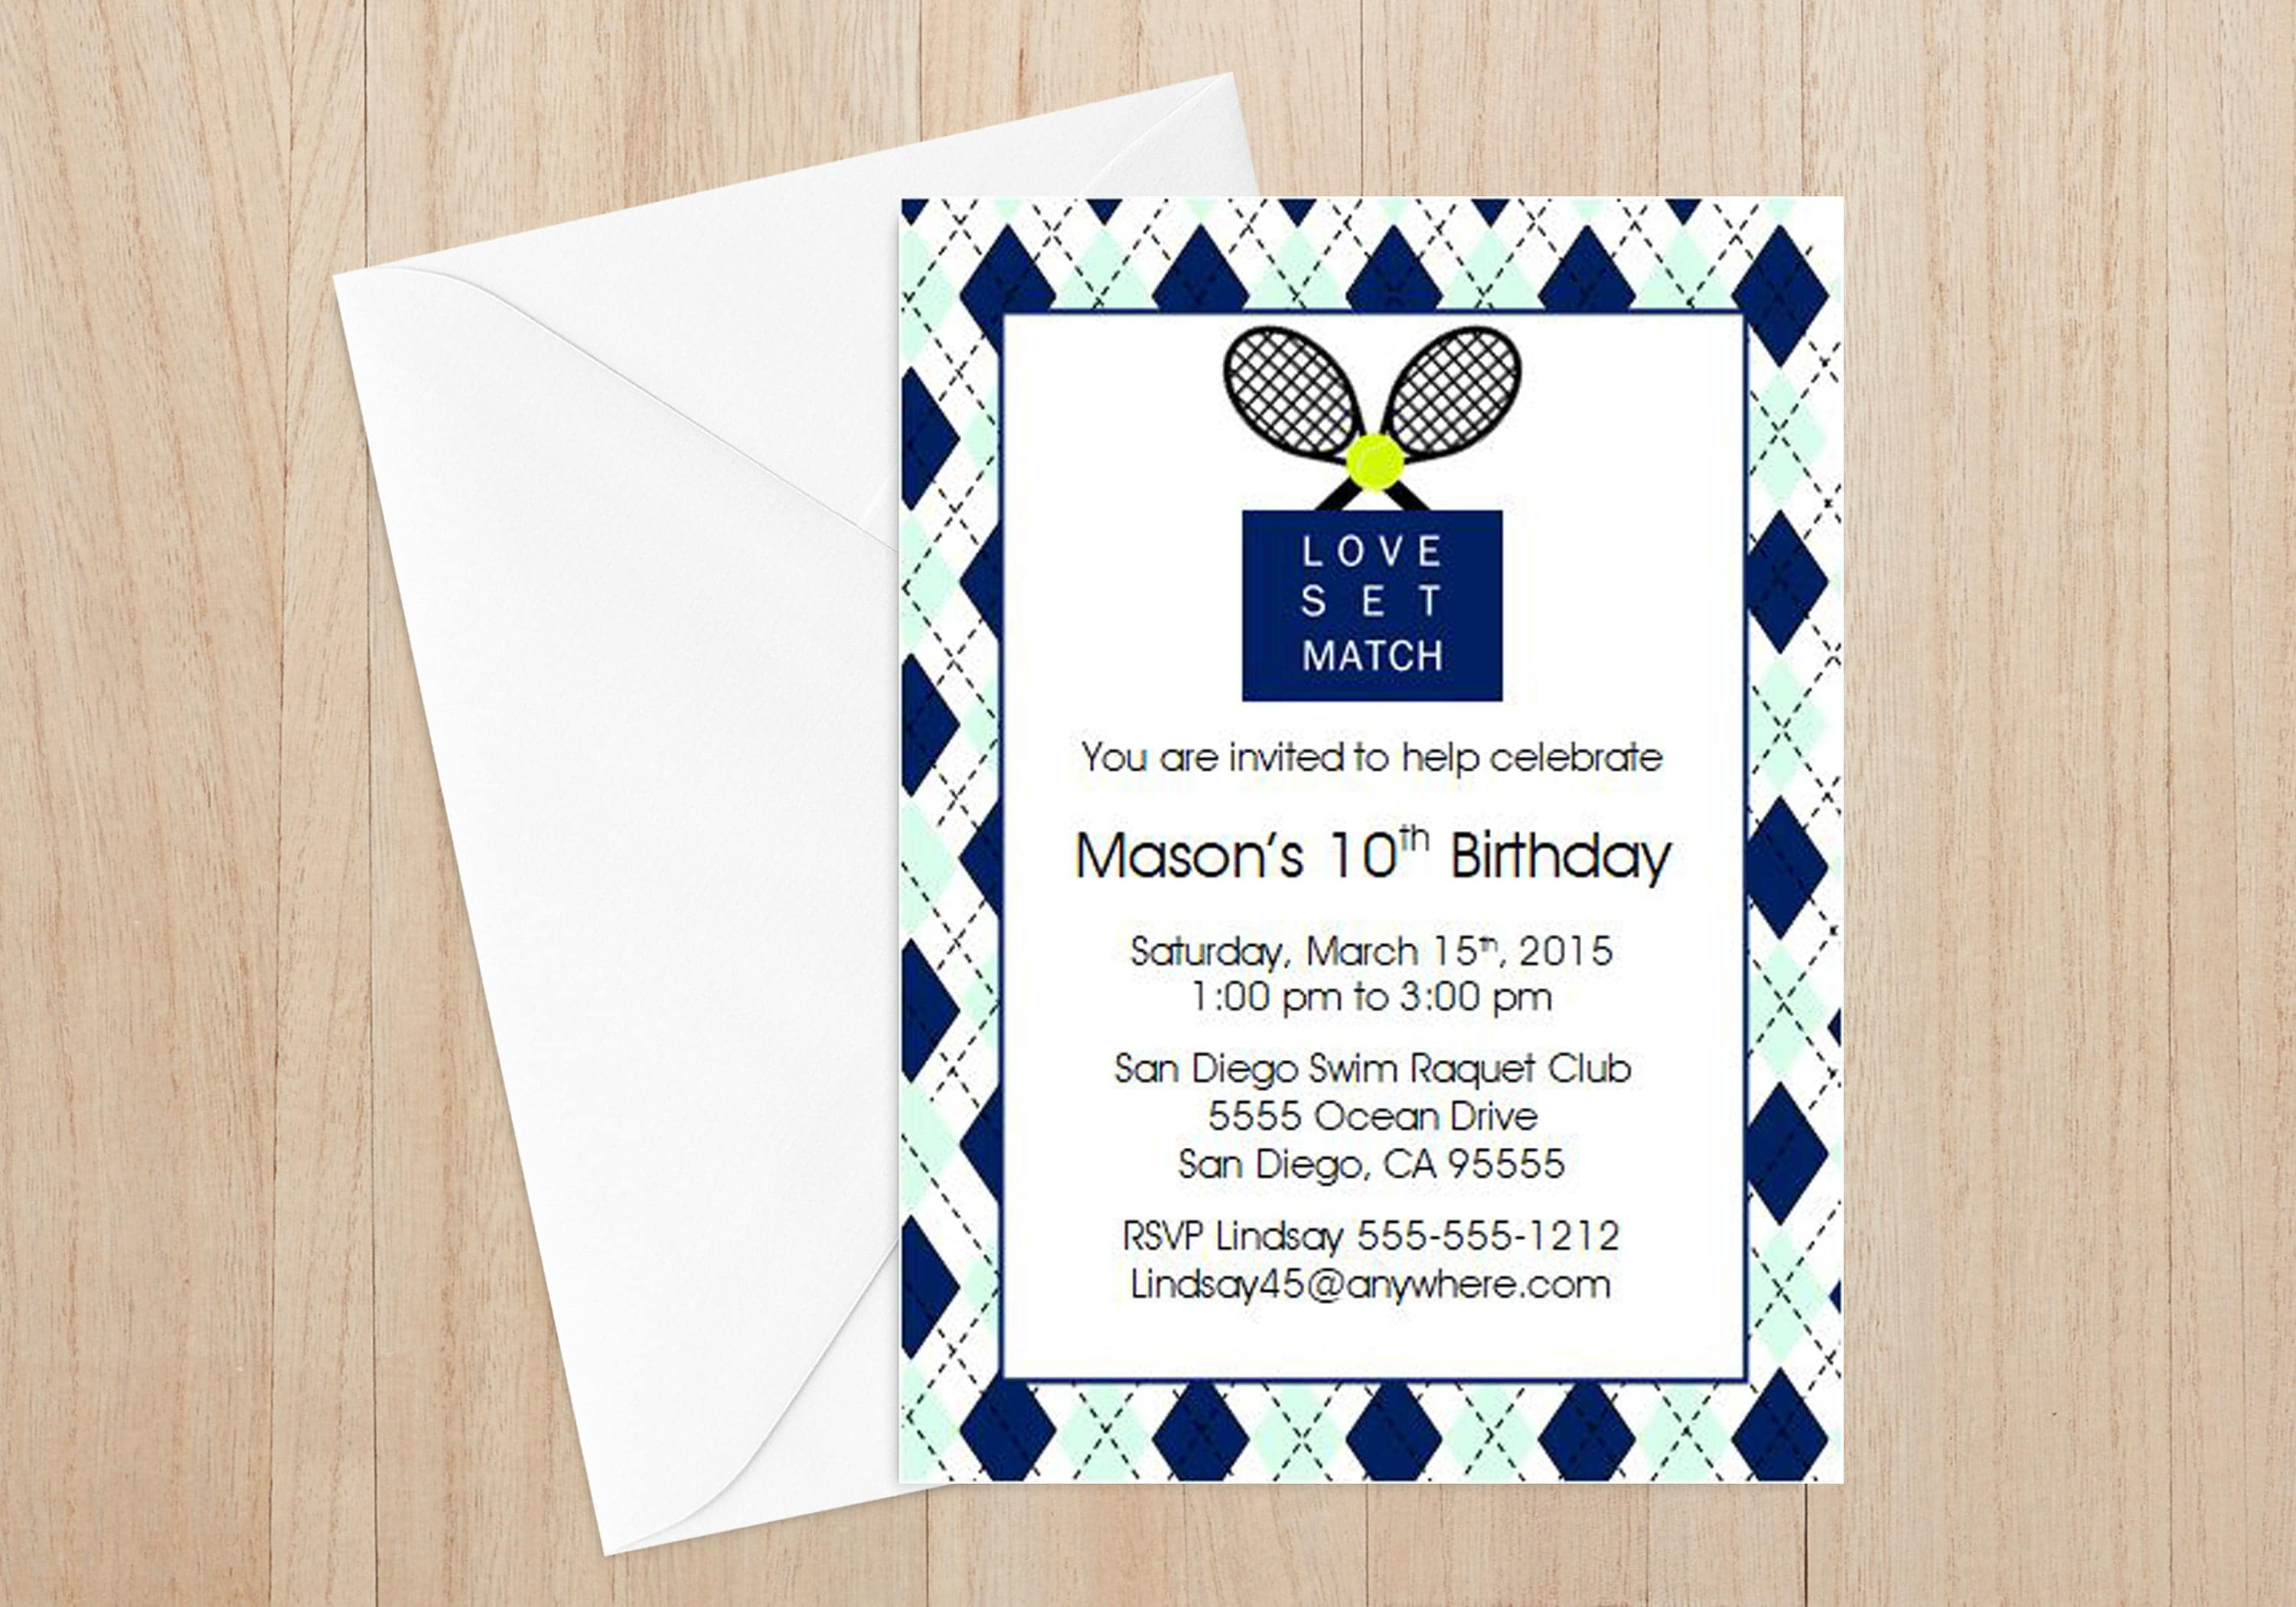 Tennis Birthday Invitations Set of 12 Tennis Themed Party | Etsy